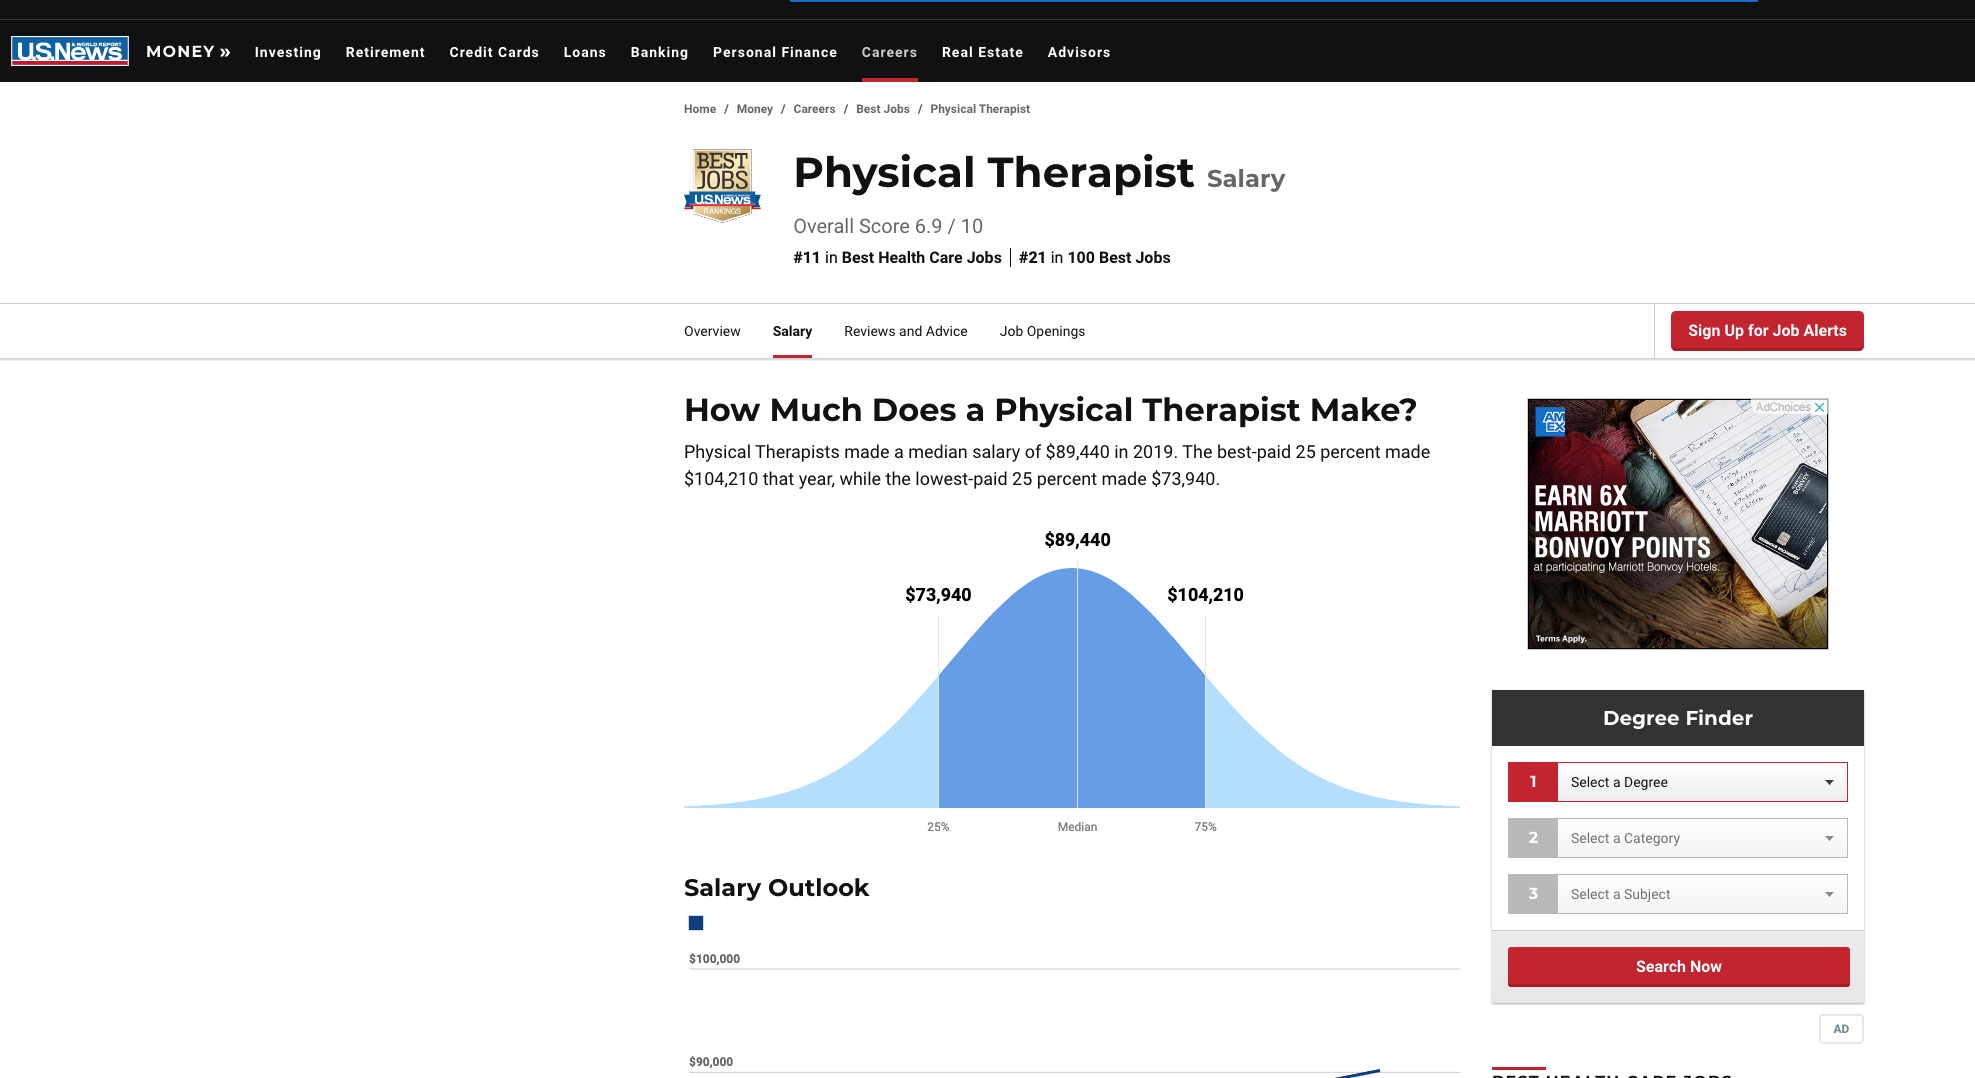 Physical Therapist Salary US News